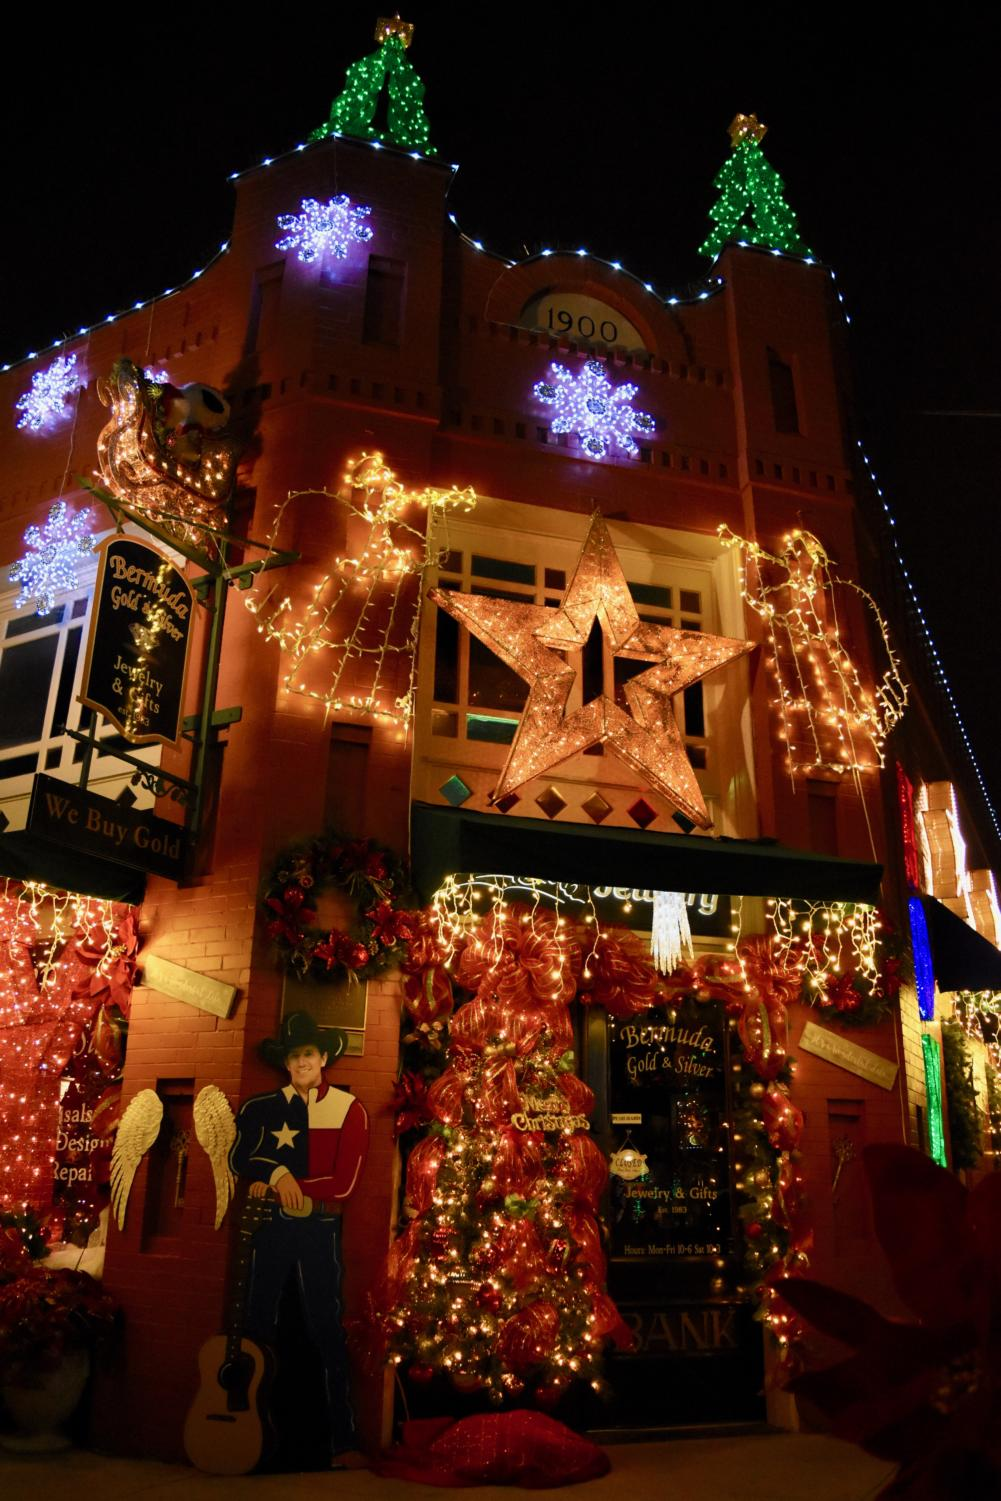 The+Bermuda+Gold+and+Silver+jewelry+shop+in+Grapevine+glitters+with+Christmas+lights+as+store+owners+have+spent+hours+decorating+their+storefronts+to+celebrate+the+holiday+season.+Grapevine+is+known+for+its+name+%E2%80%9CThe+Christmas+Capital+of+Texas%E2%80%9D+for+their+annual+decorations%2C+parade%2C+and+the+North+Pole+Express+train.